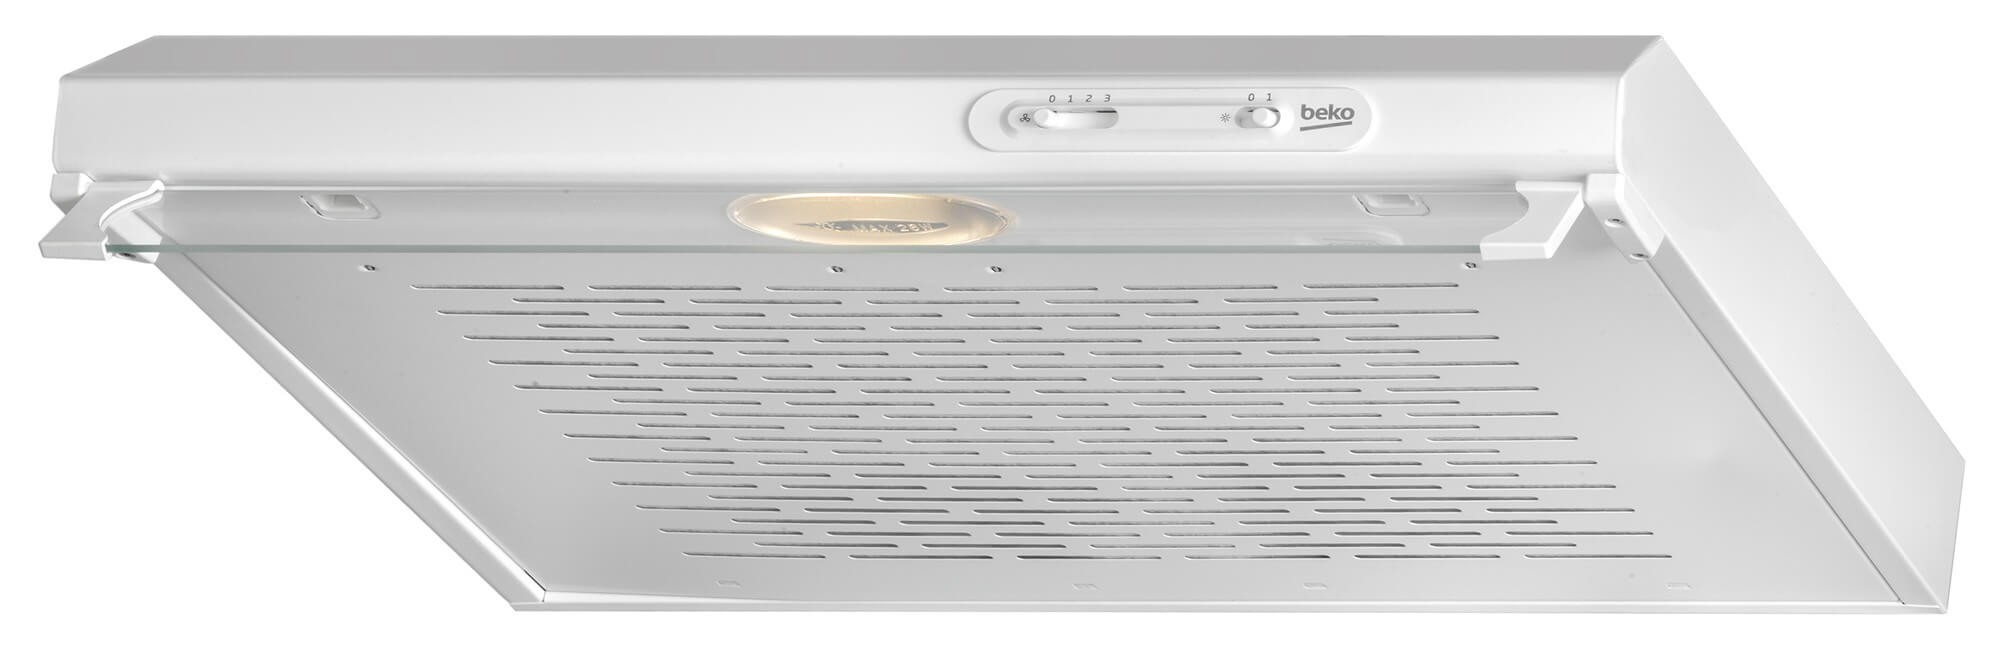 Hota traditionala Beko CFB6310W